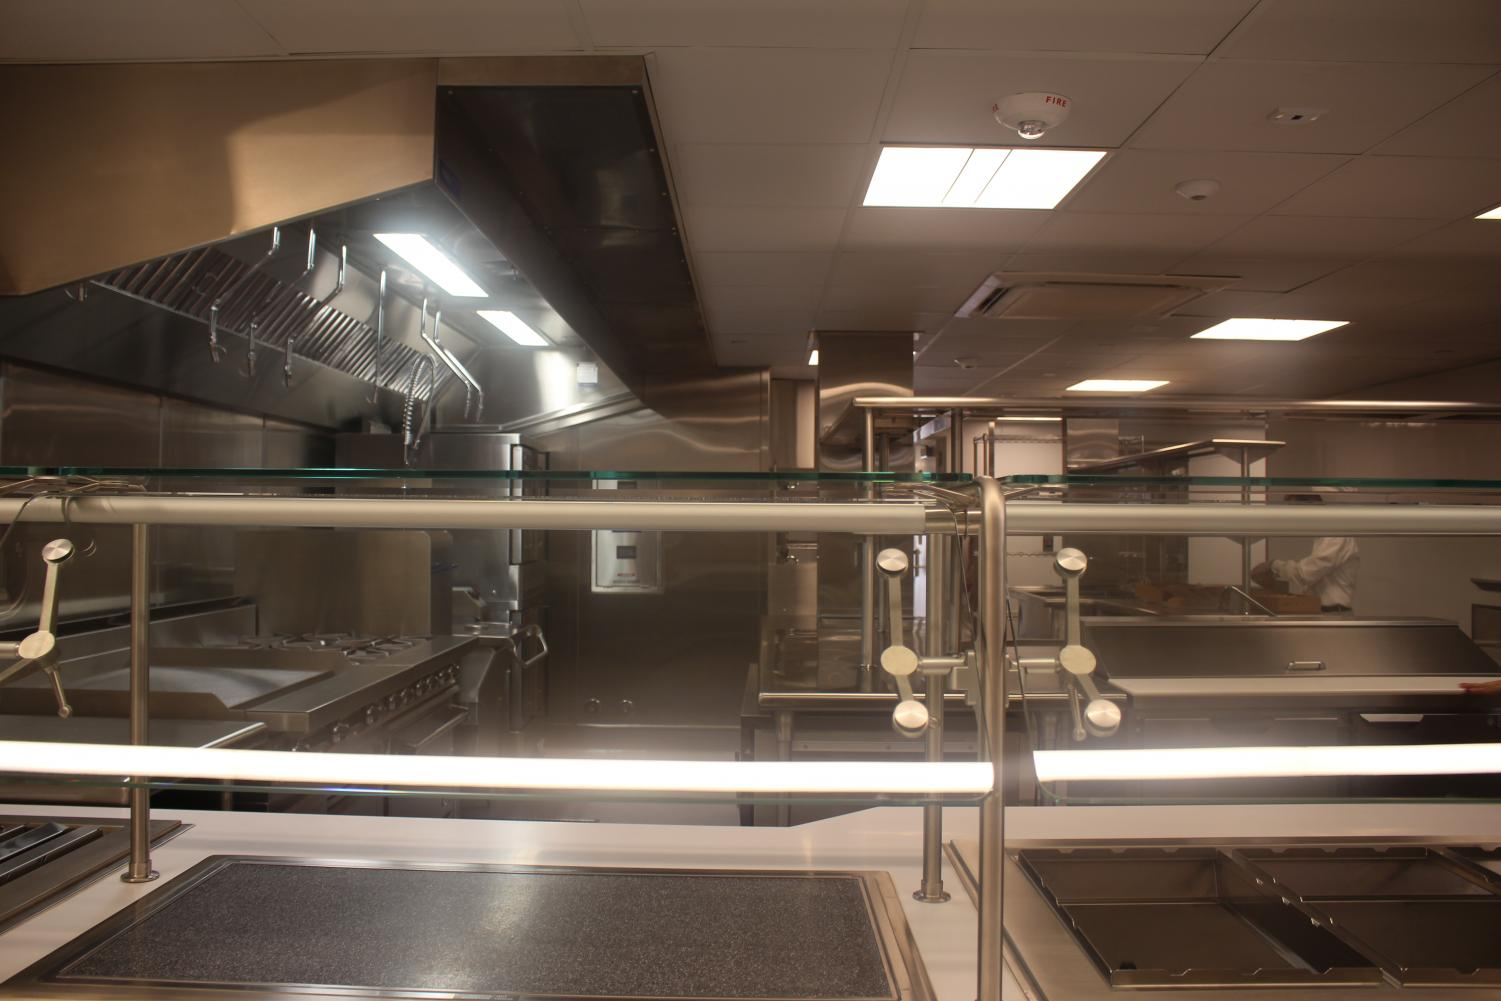 The+kitchen+and+servery+are+both+adjacent+to+the+Dining+Hall.+Students+will+be+able+to+purchase+both+hot+meals+and+snacks+in+the+new+facility.+